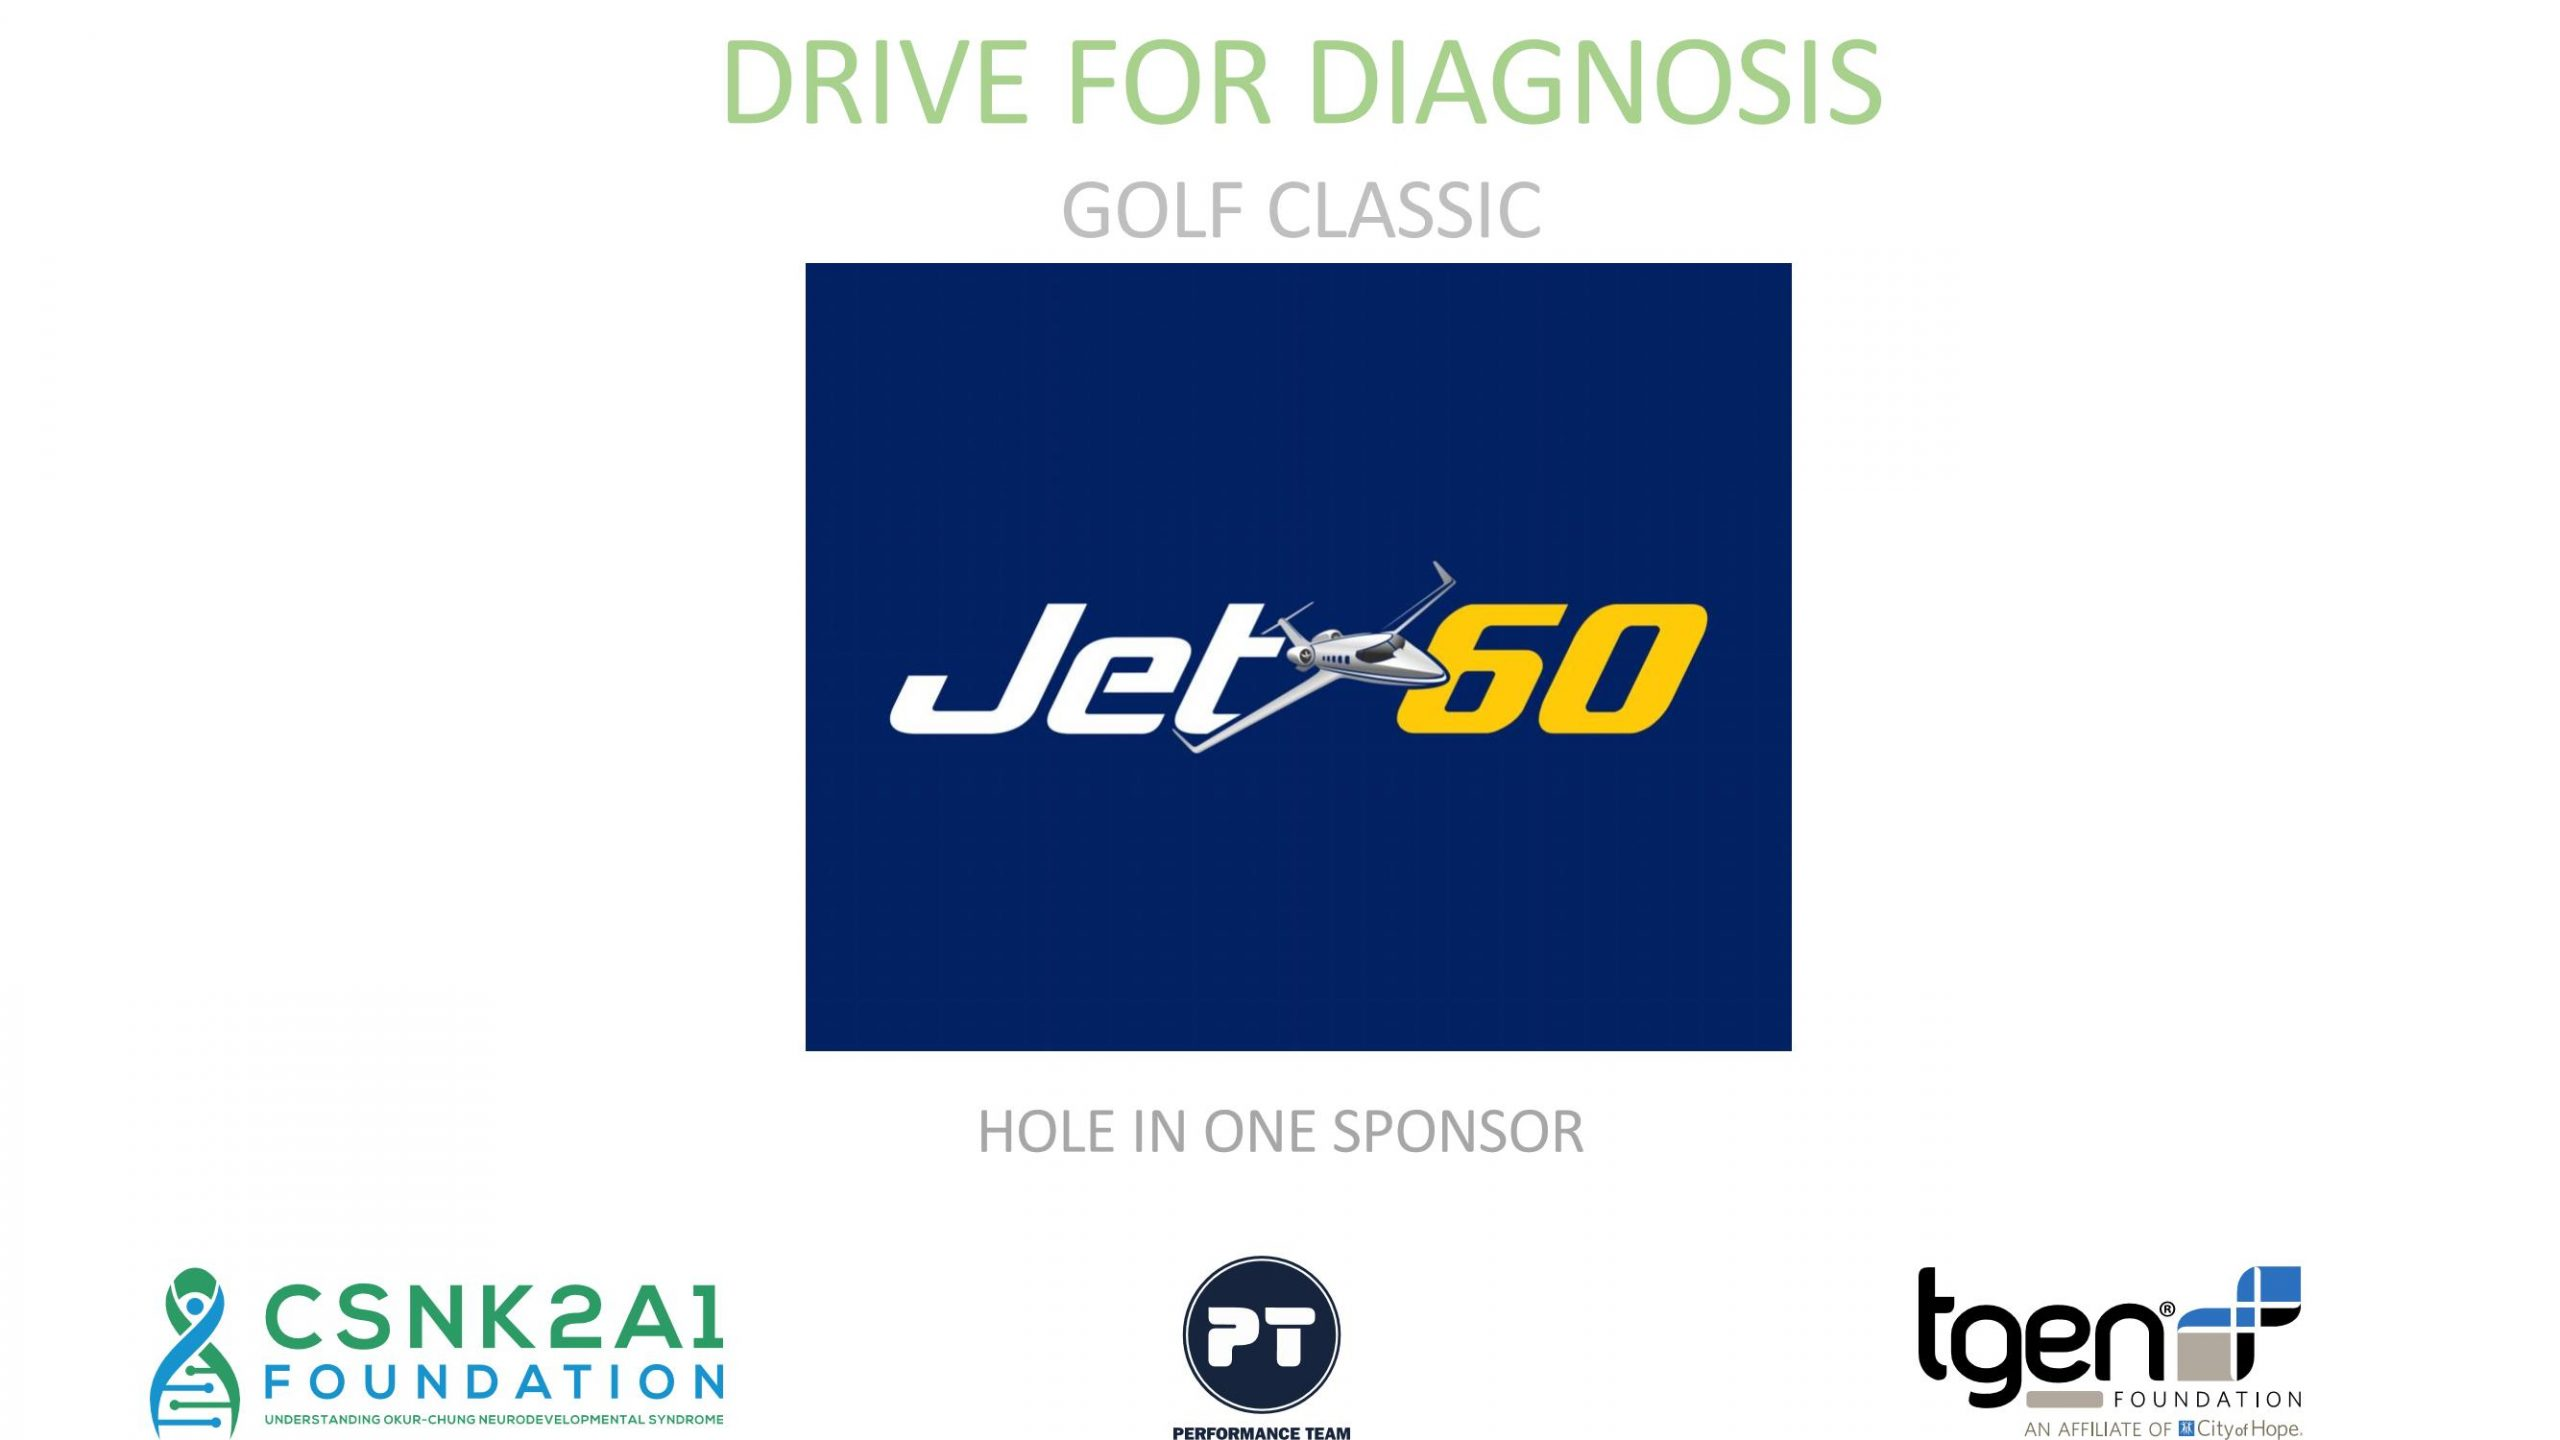 Hole in One Sponsor - Jet 60